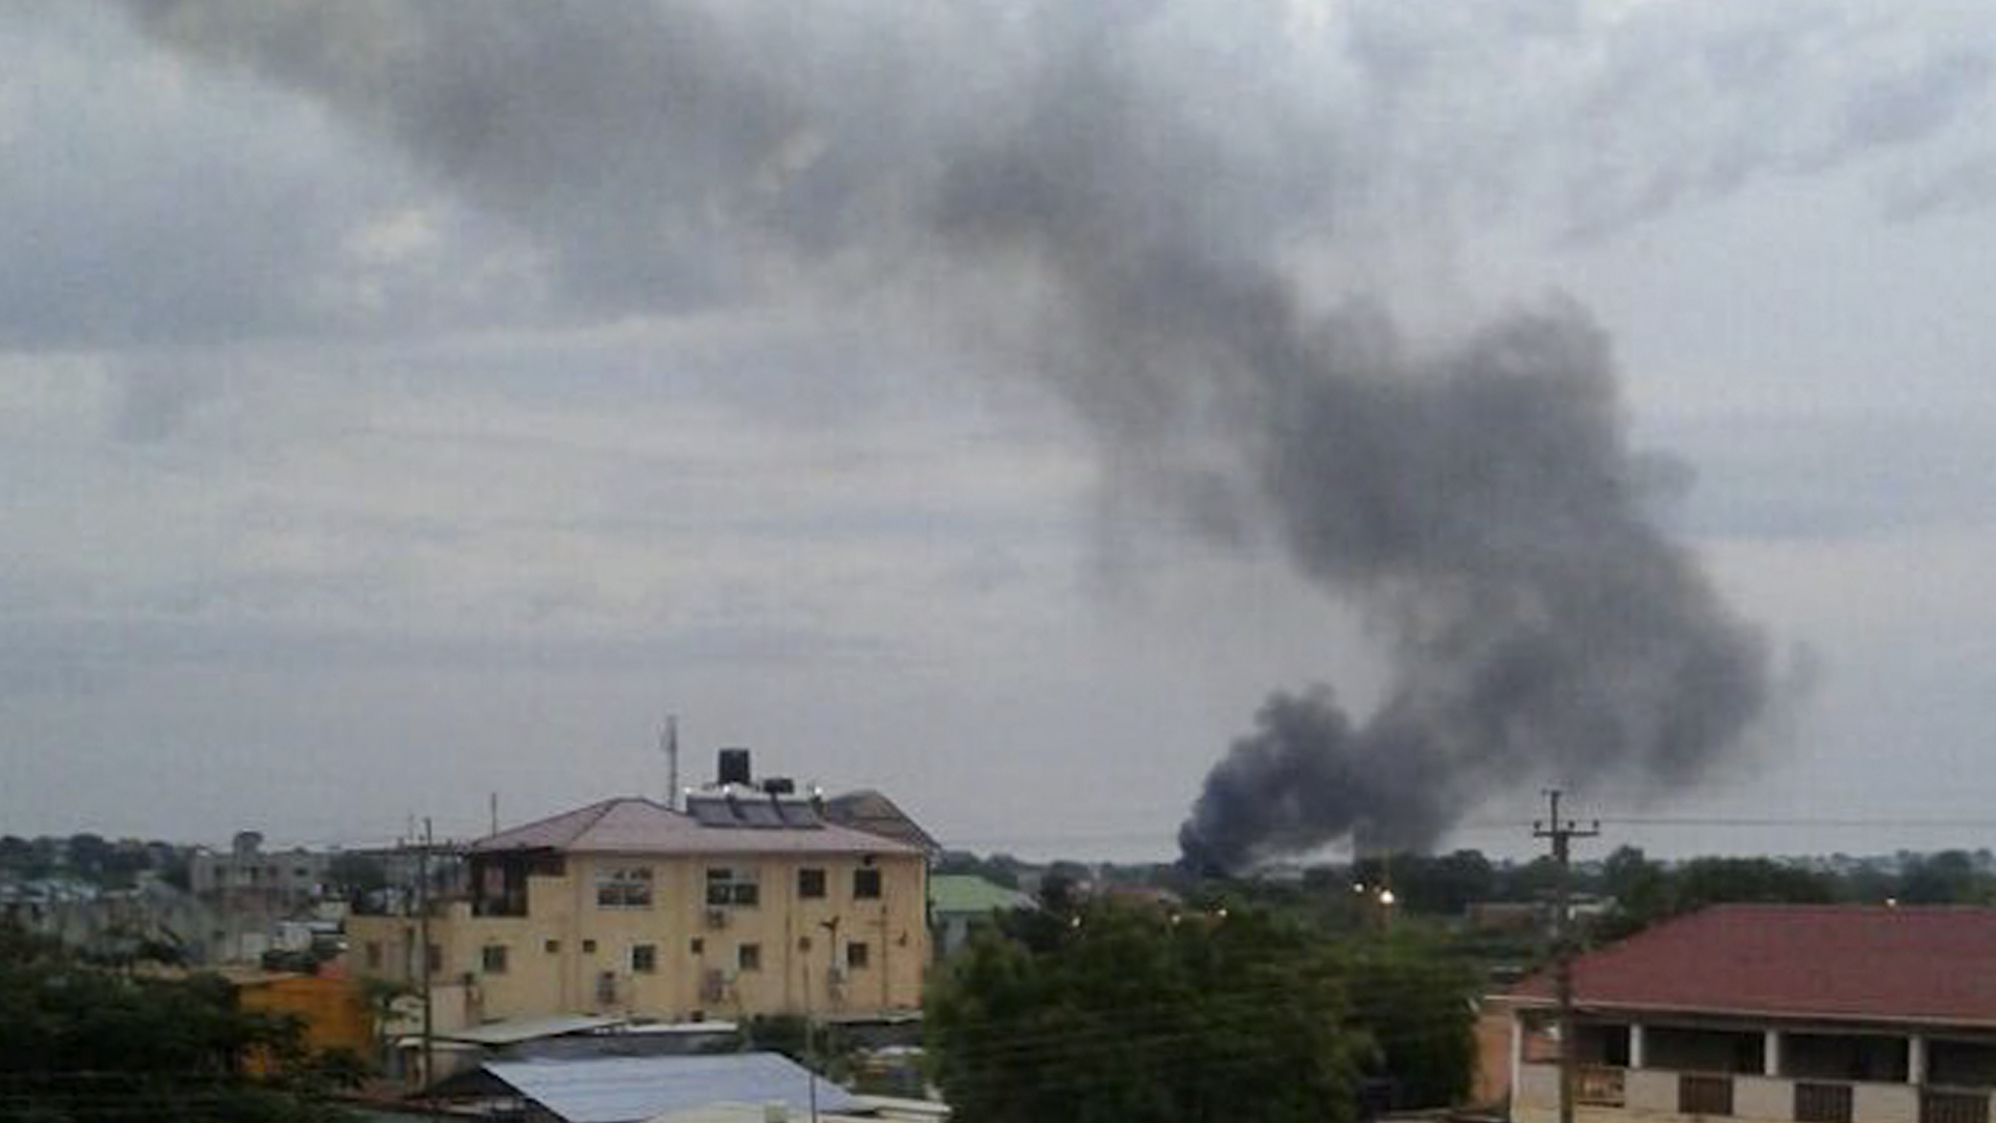 Black smoke rises above Juba, the capital of South Sudan, on Sunday. Explosions and heavy weapons gunfire are shaking Juba Monday in the fifth day of clashes between government and opposition forces, raising the specter of a return to civil war. (Iain McLellan/AP)